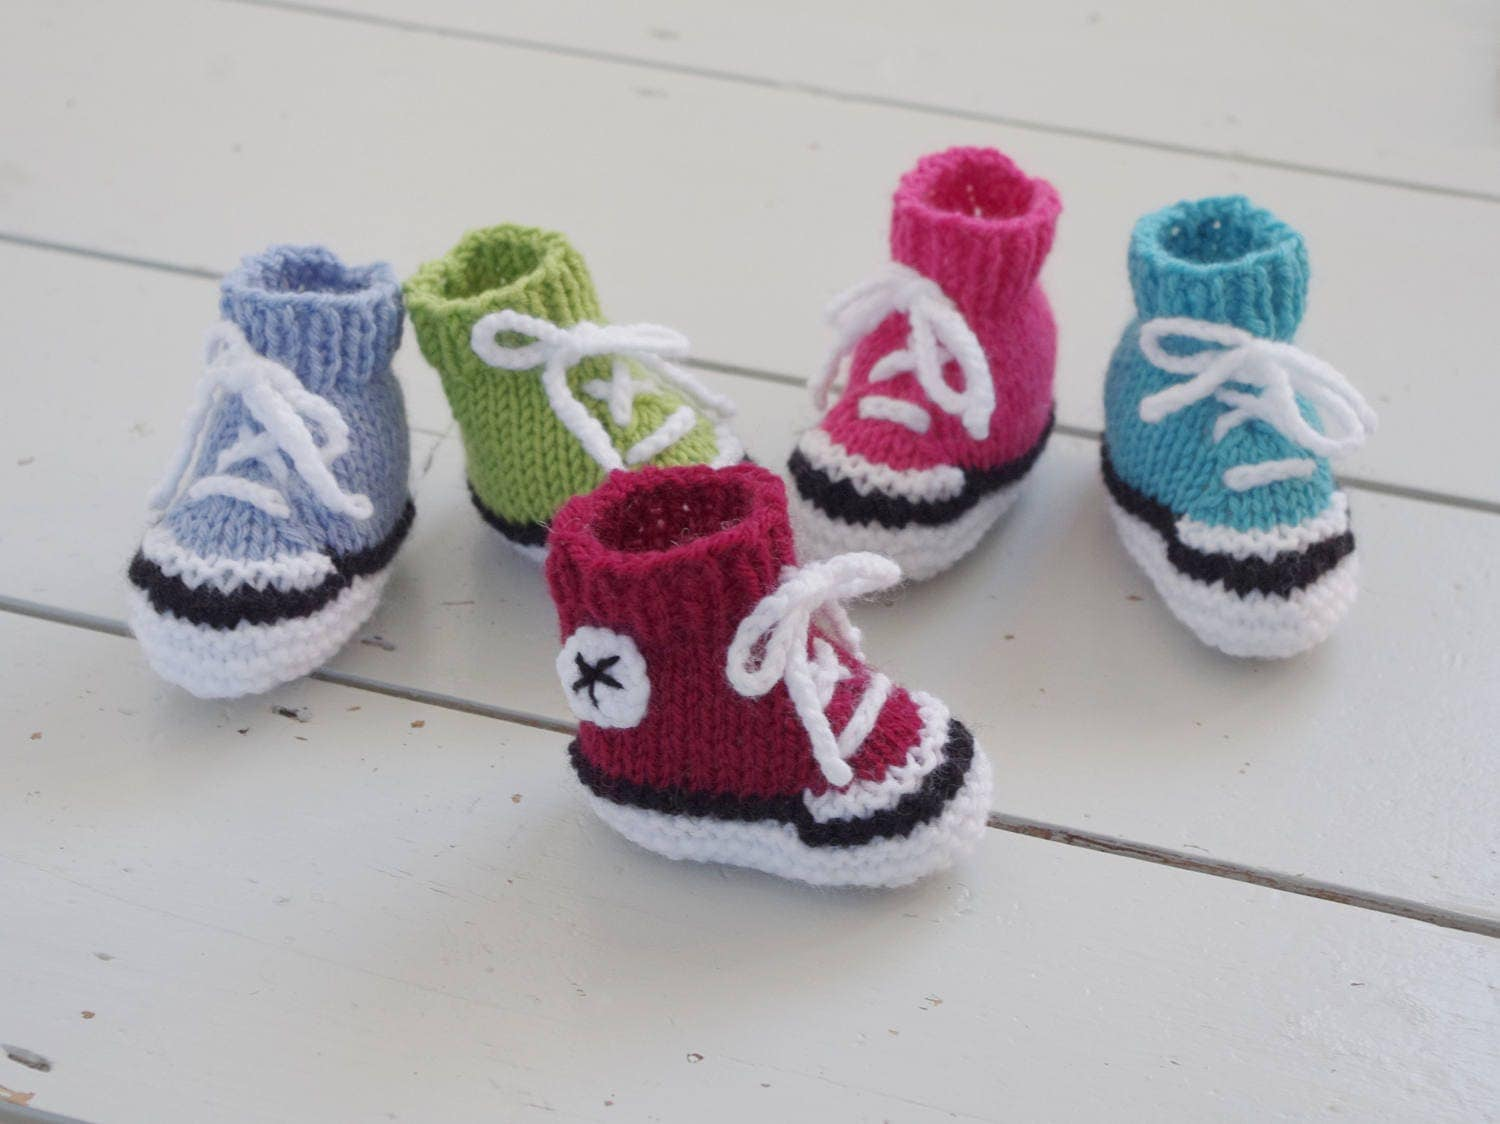 Easy Knitting Pattern For Babies Booties : Easy simple baby booties knitting pattern instructions